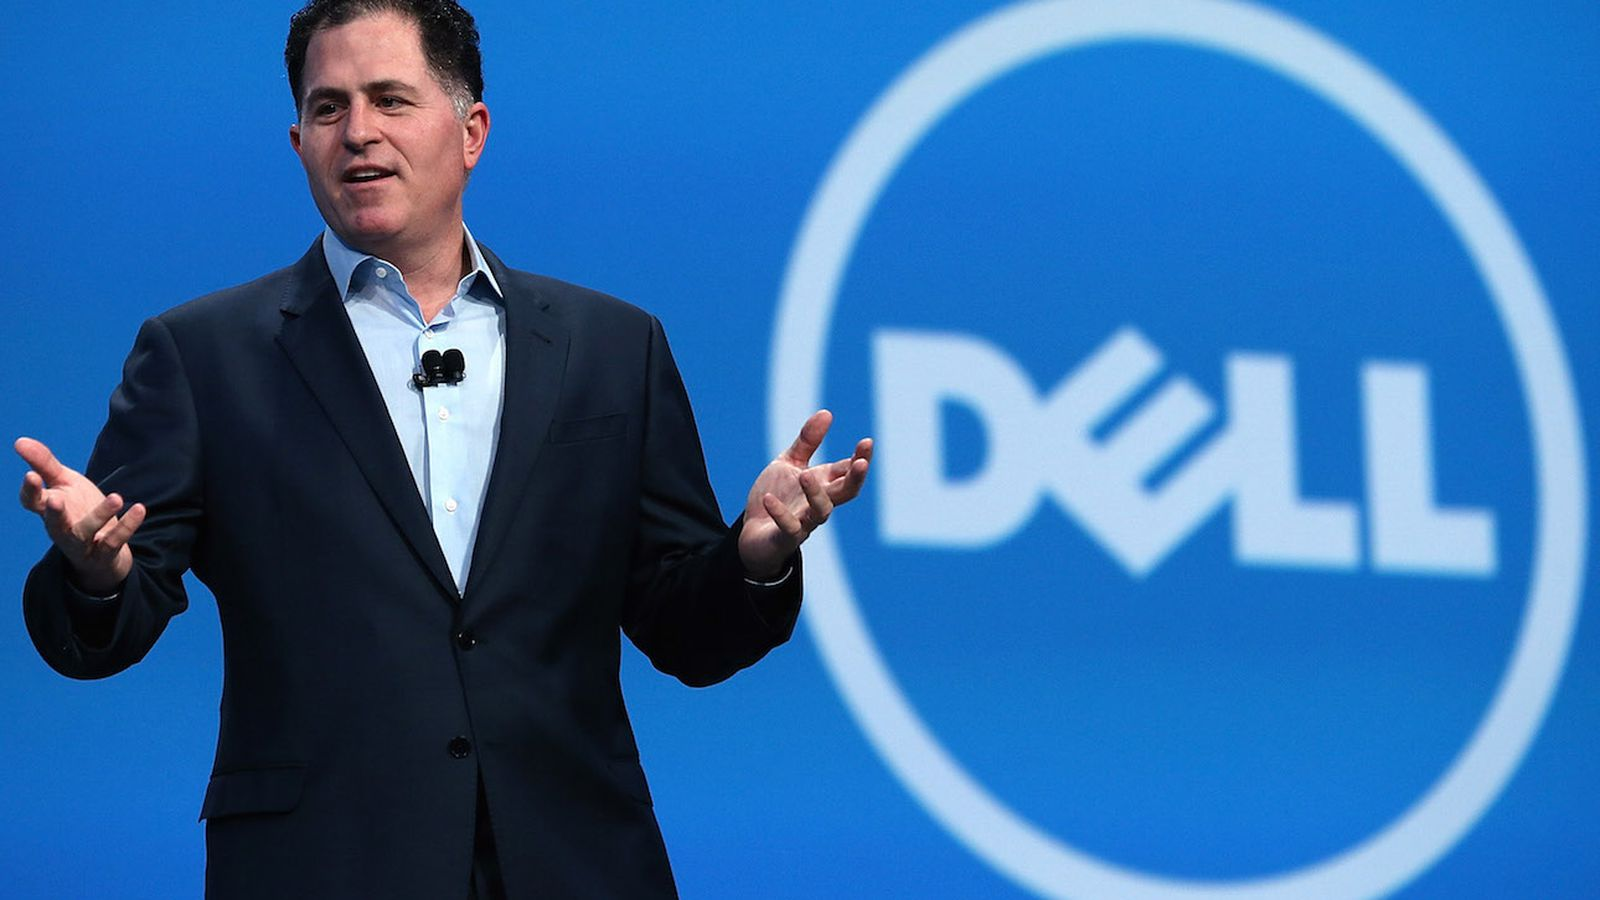 dell hints at continued weakness in memo to employees recode